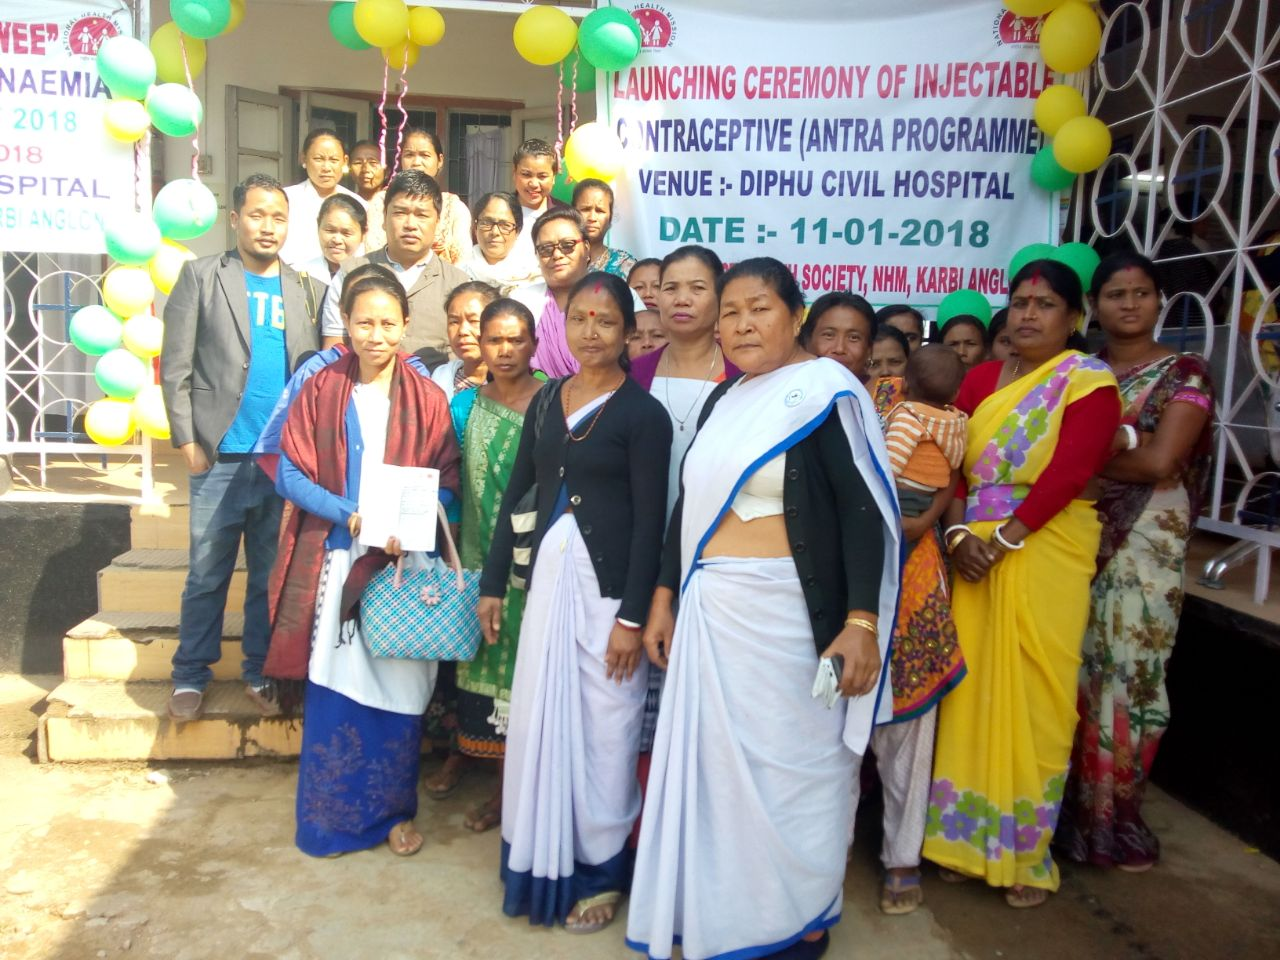 Injectable Contraceptive (MPA) launched at Diphu Civil Hospital, Karbi Anglong and Civil Hospital, Goalpara in Assam.